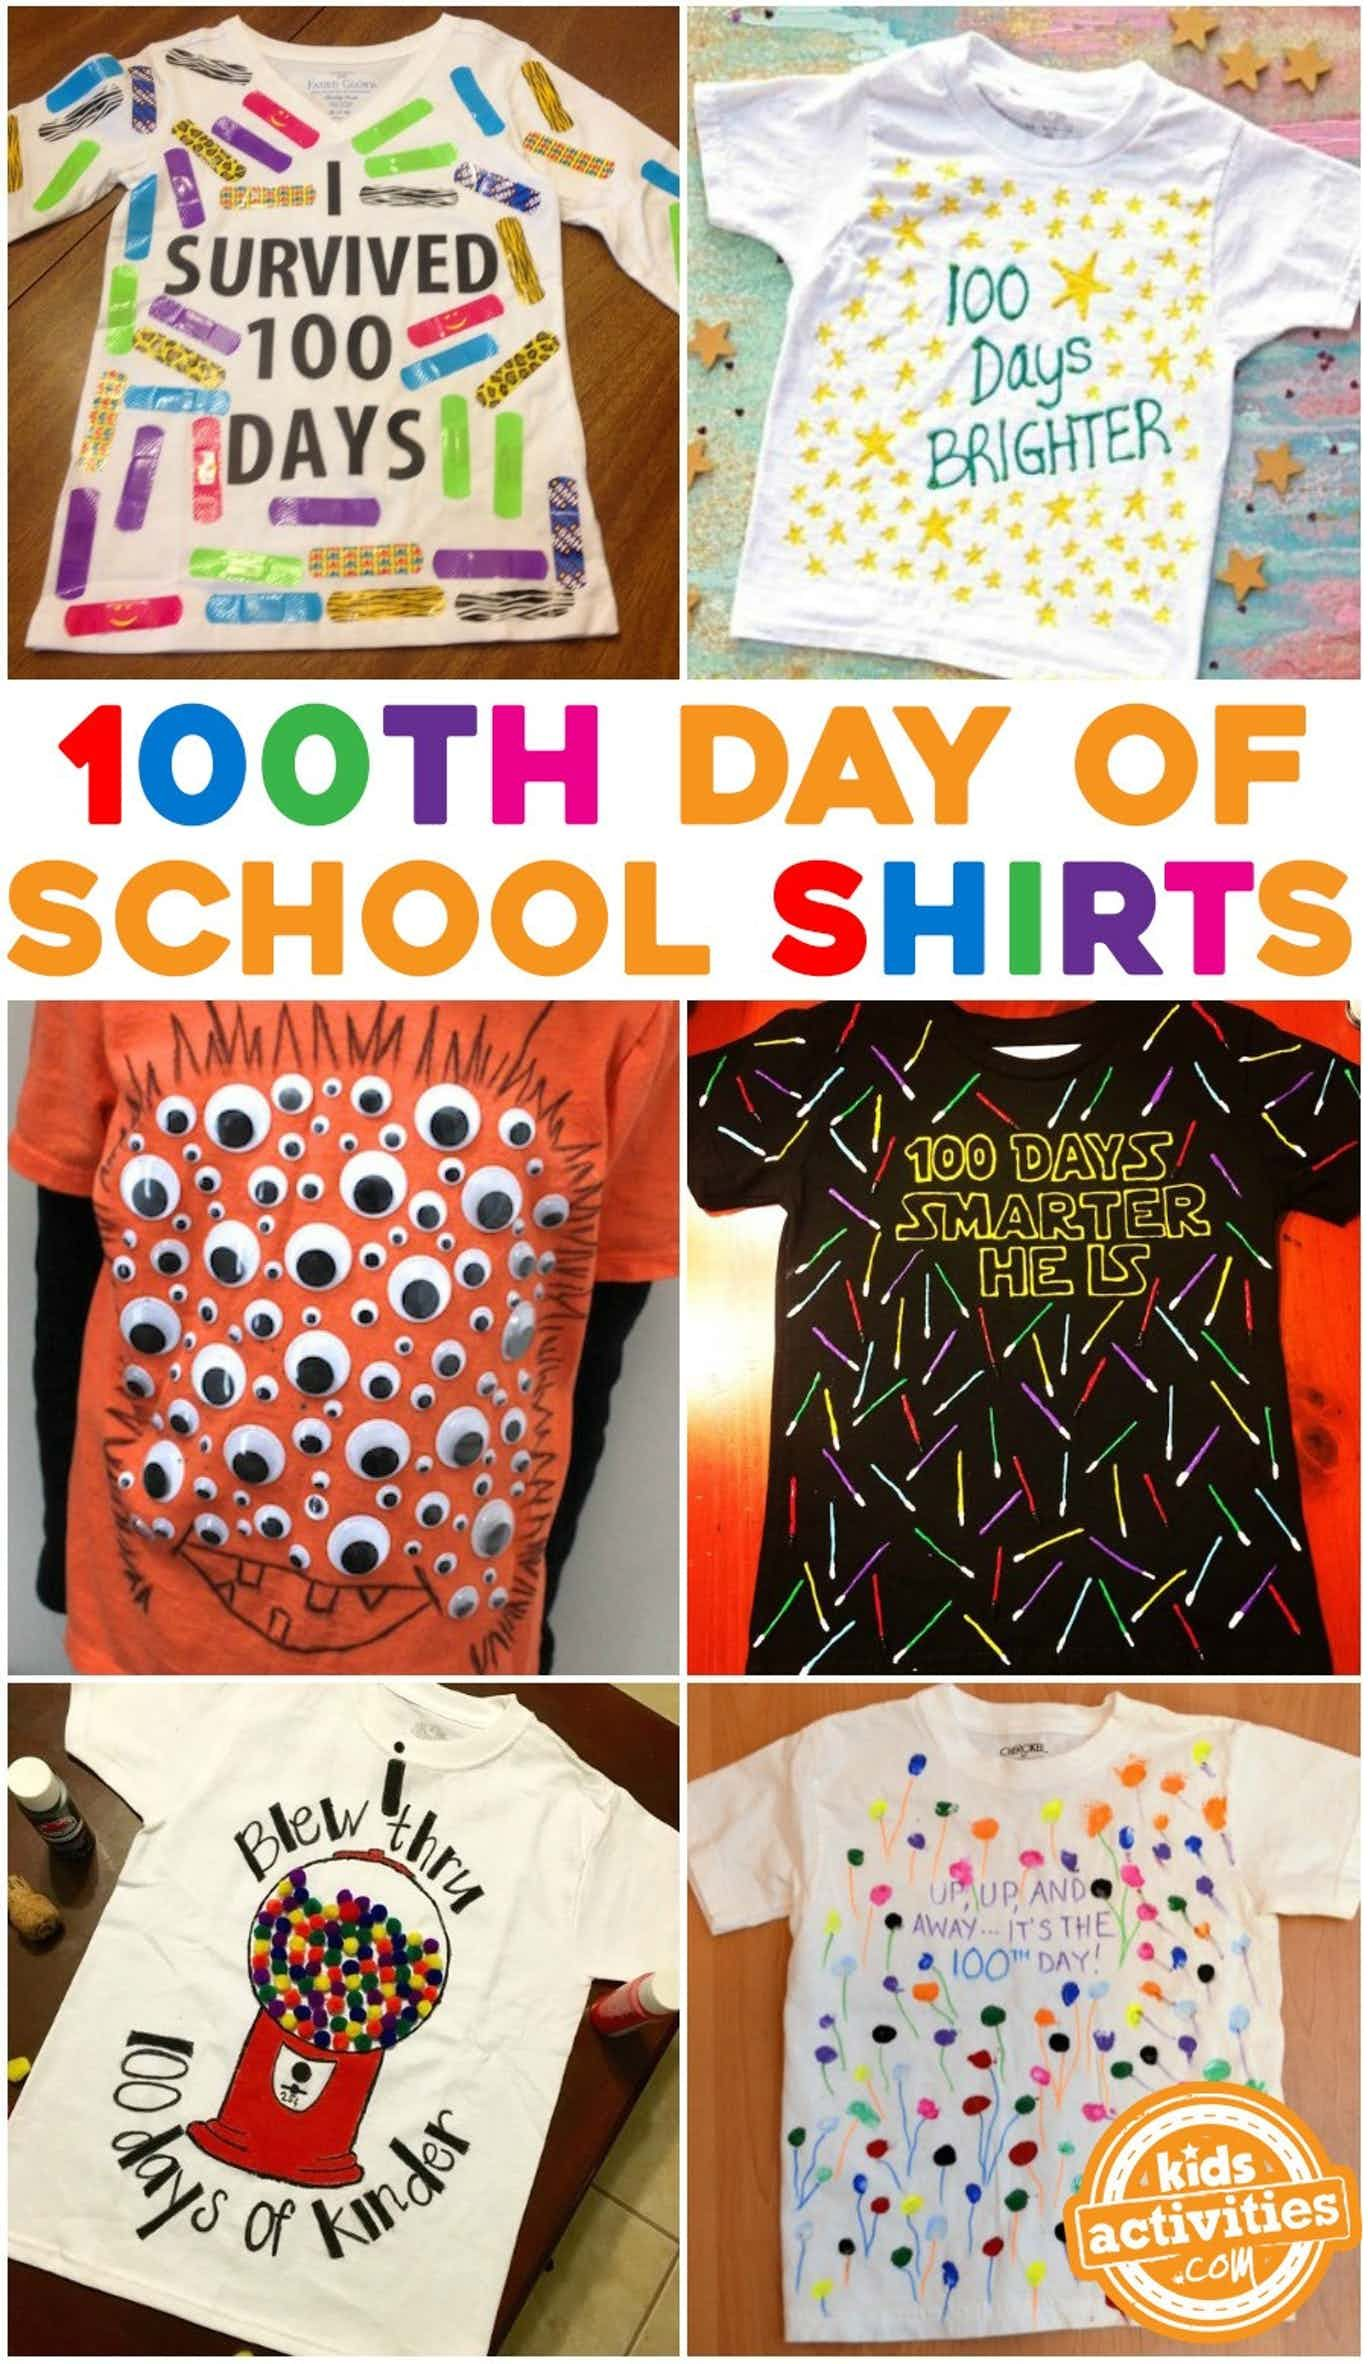 ? 100th Day of School Shirt Ideas | Kids Activities Blog